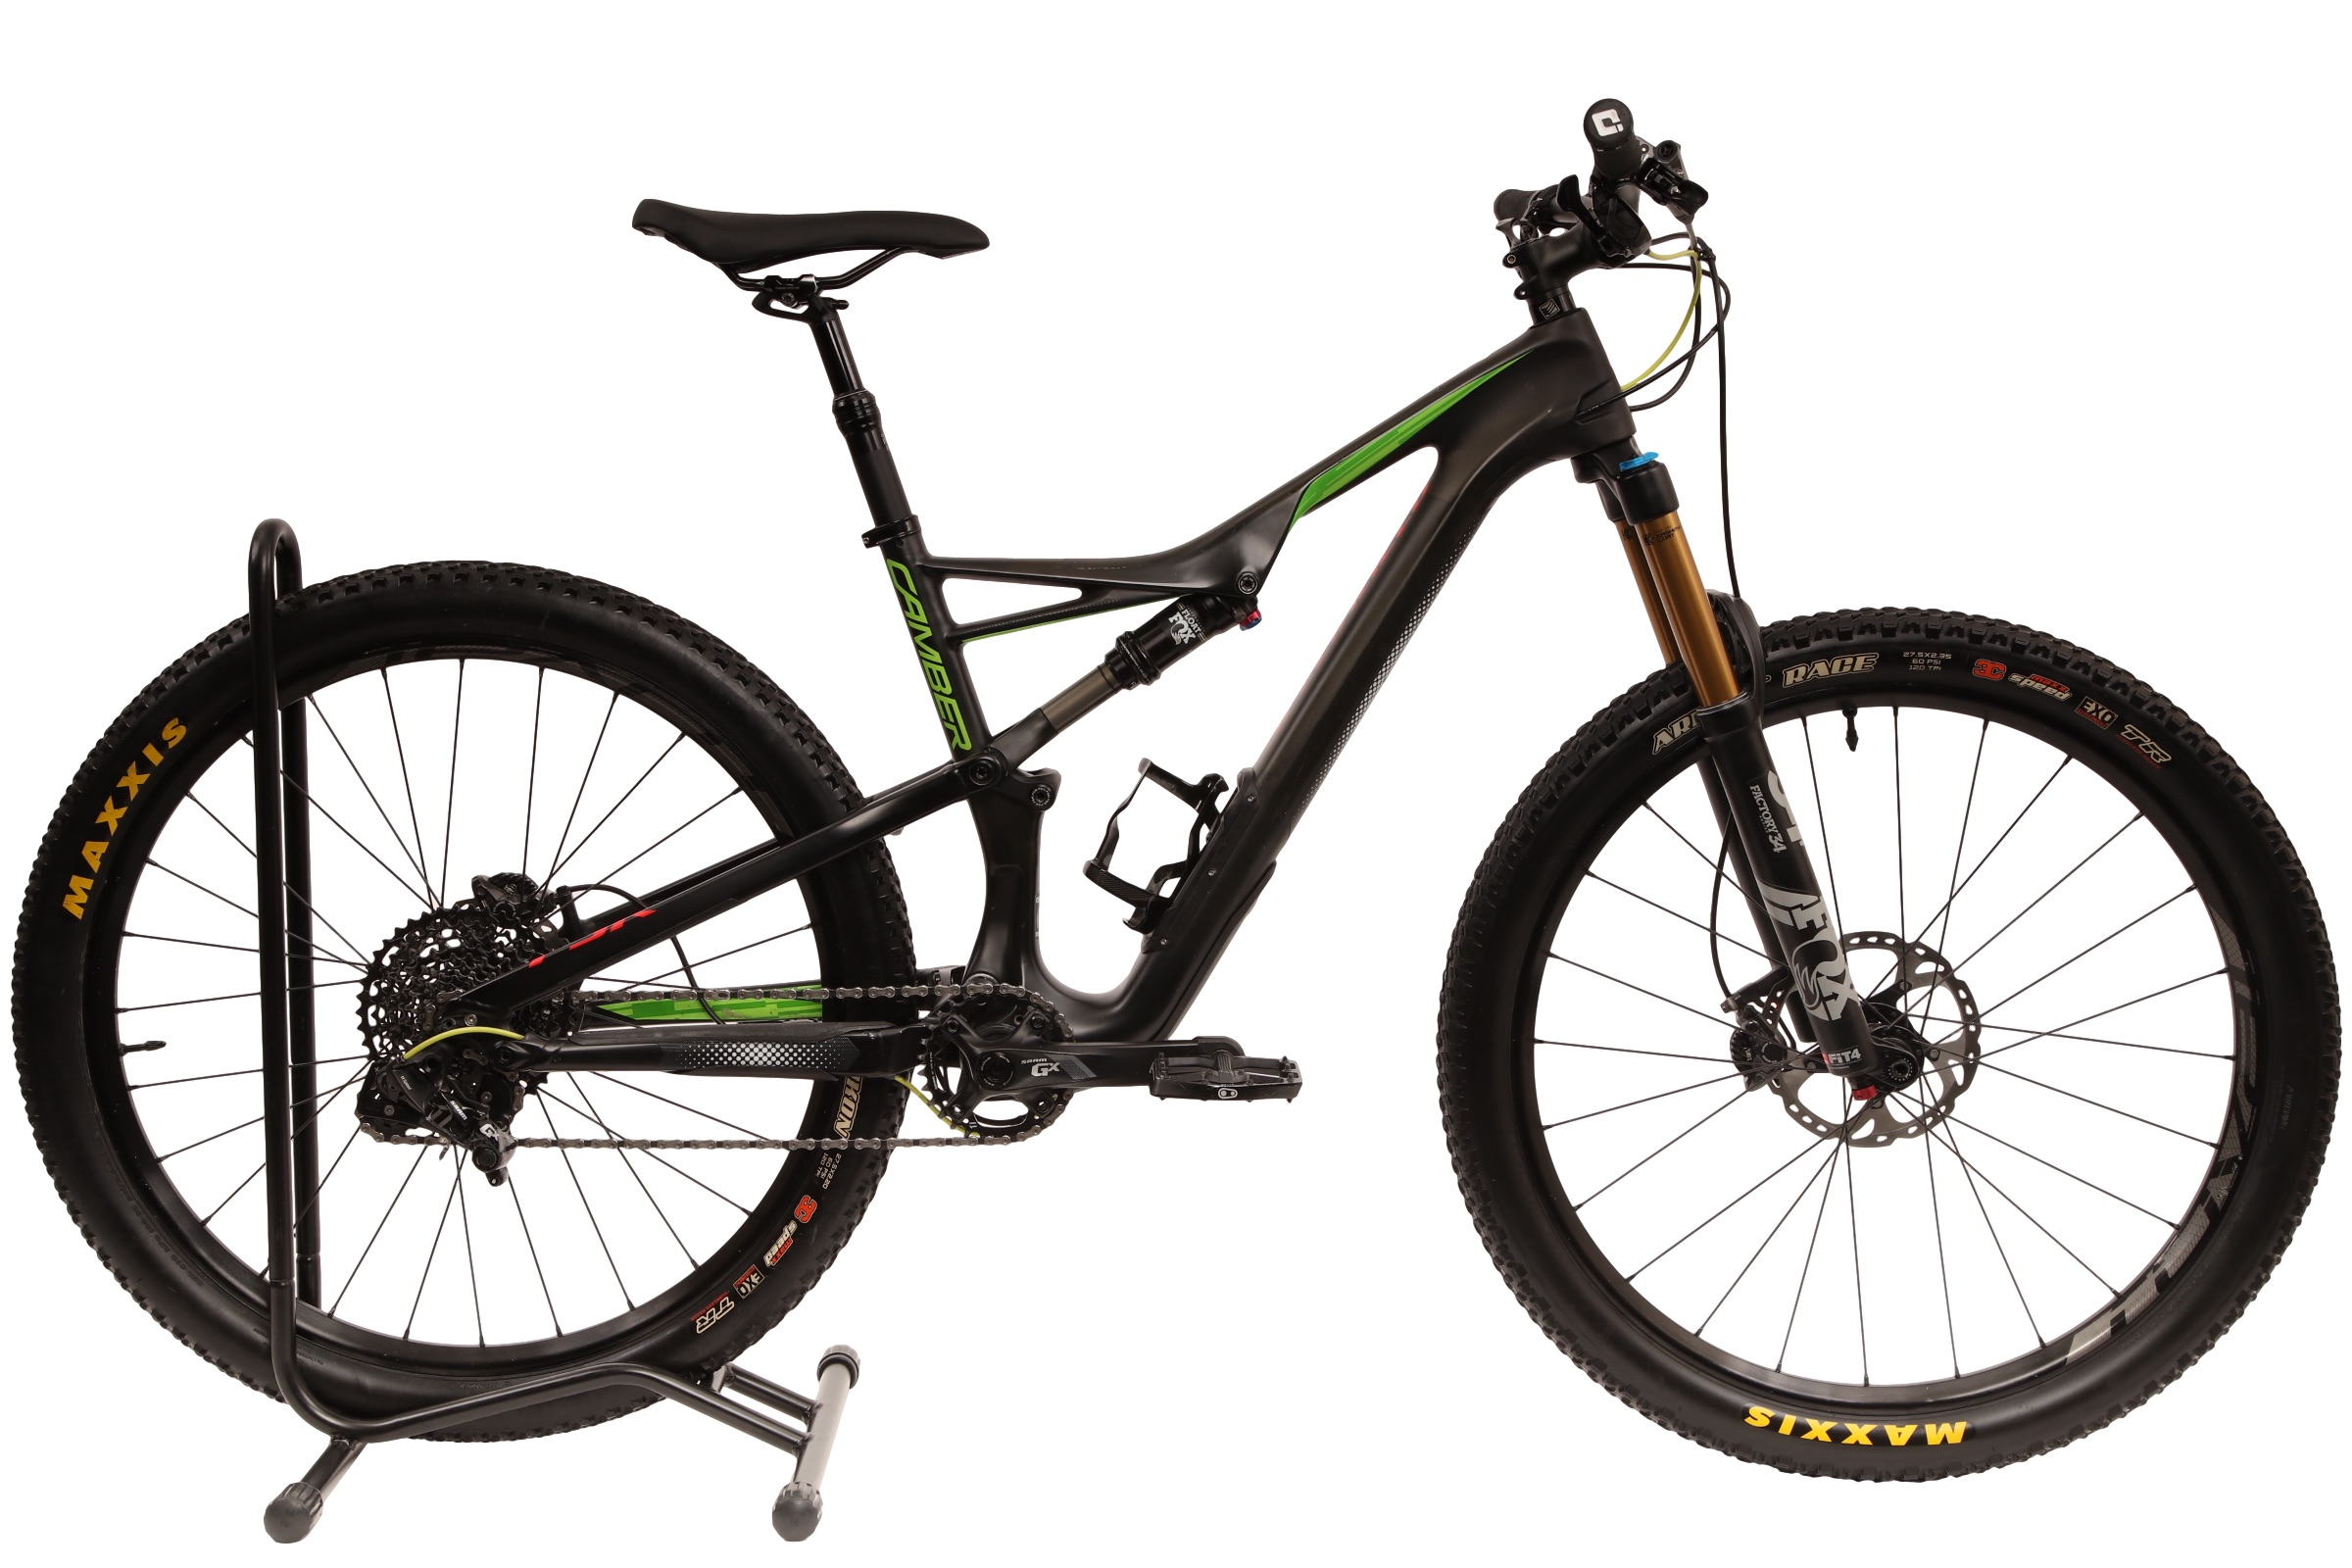 016 Specialized Camber Comp Carbon 650B